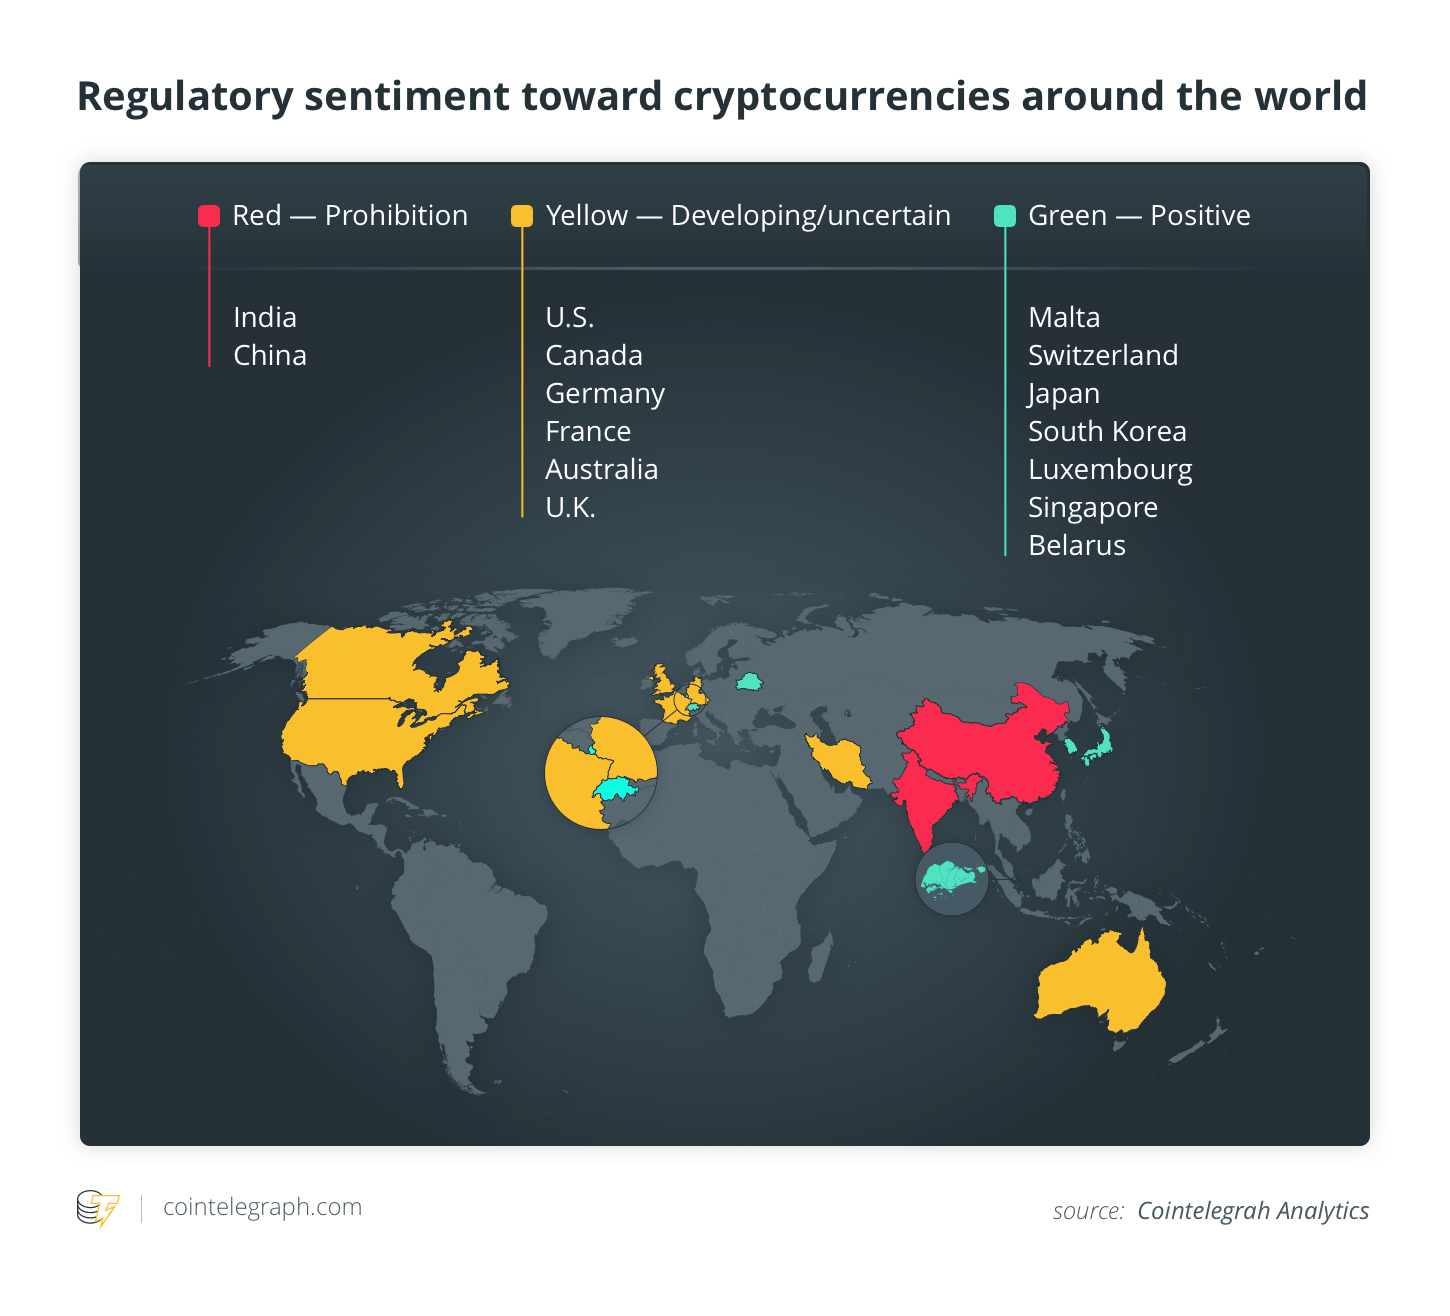 Regulatory sentiment toward cryptocurrencies around the world